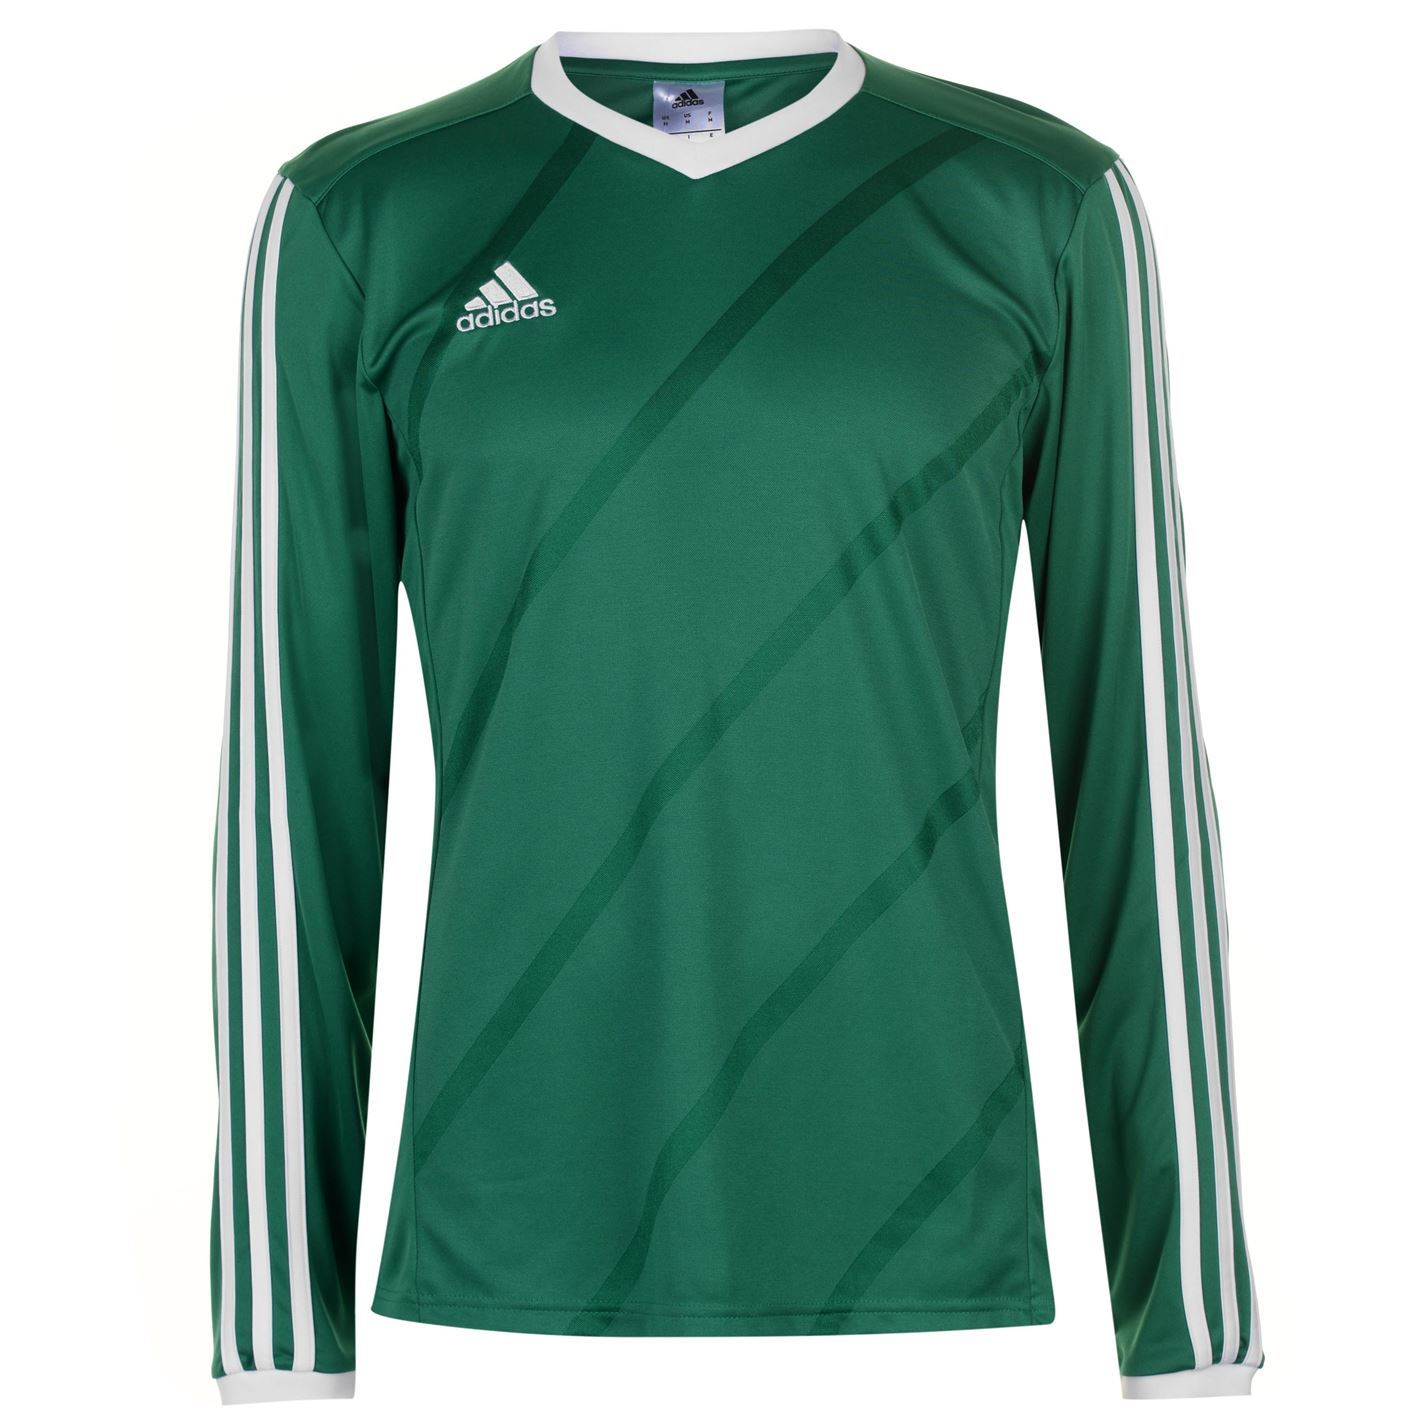 52c32a800a0 adidas Tabela 14 Long Sleeve Football Jersey Mens Soccer Shirt Top T ...